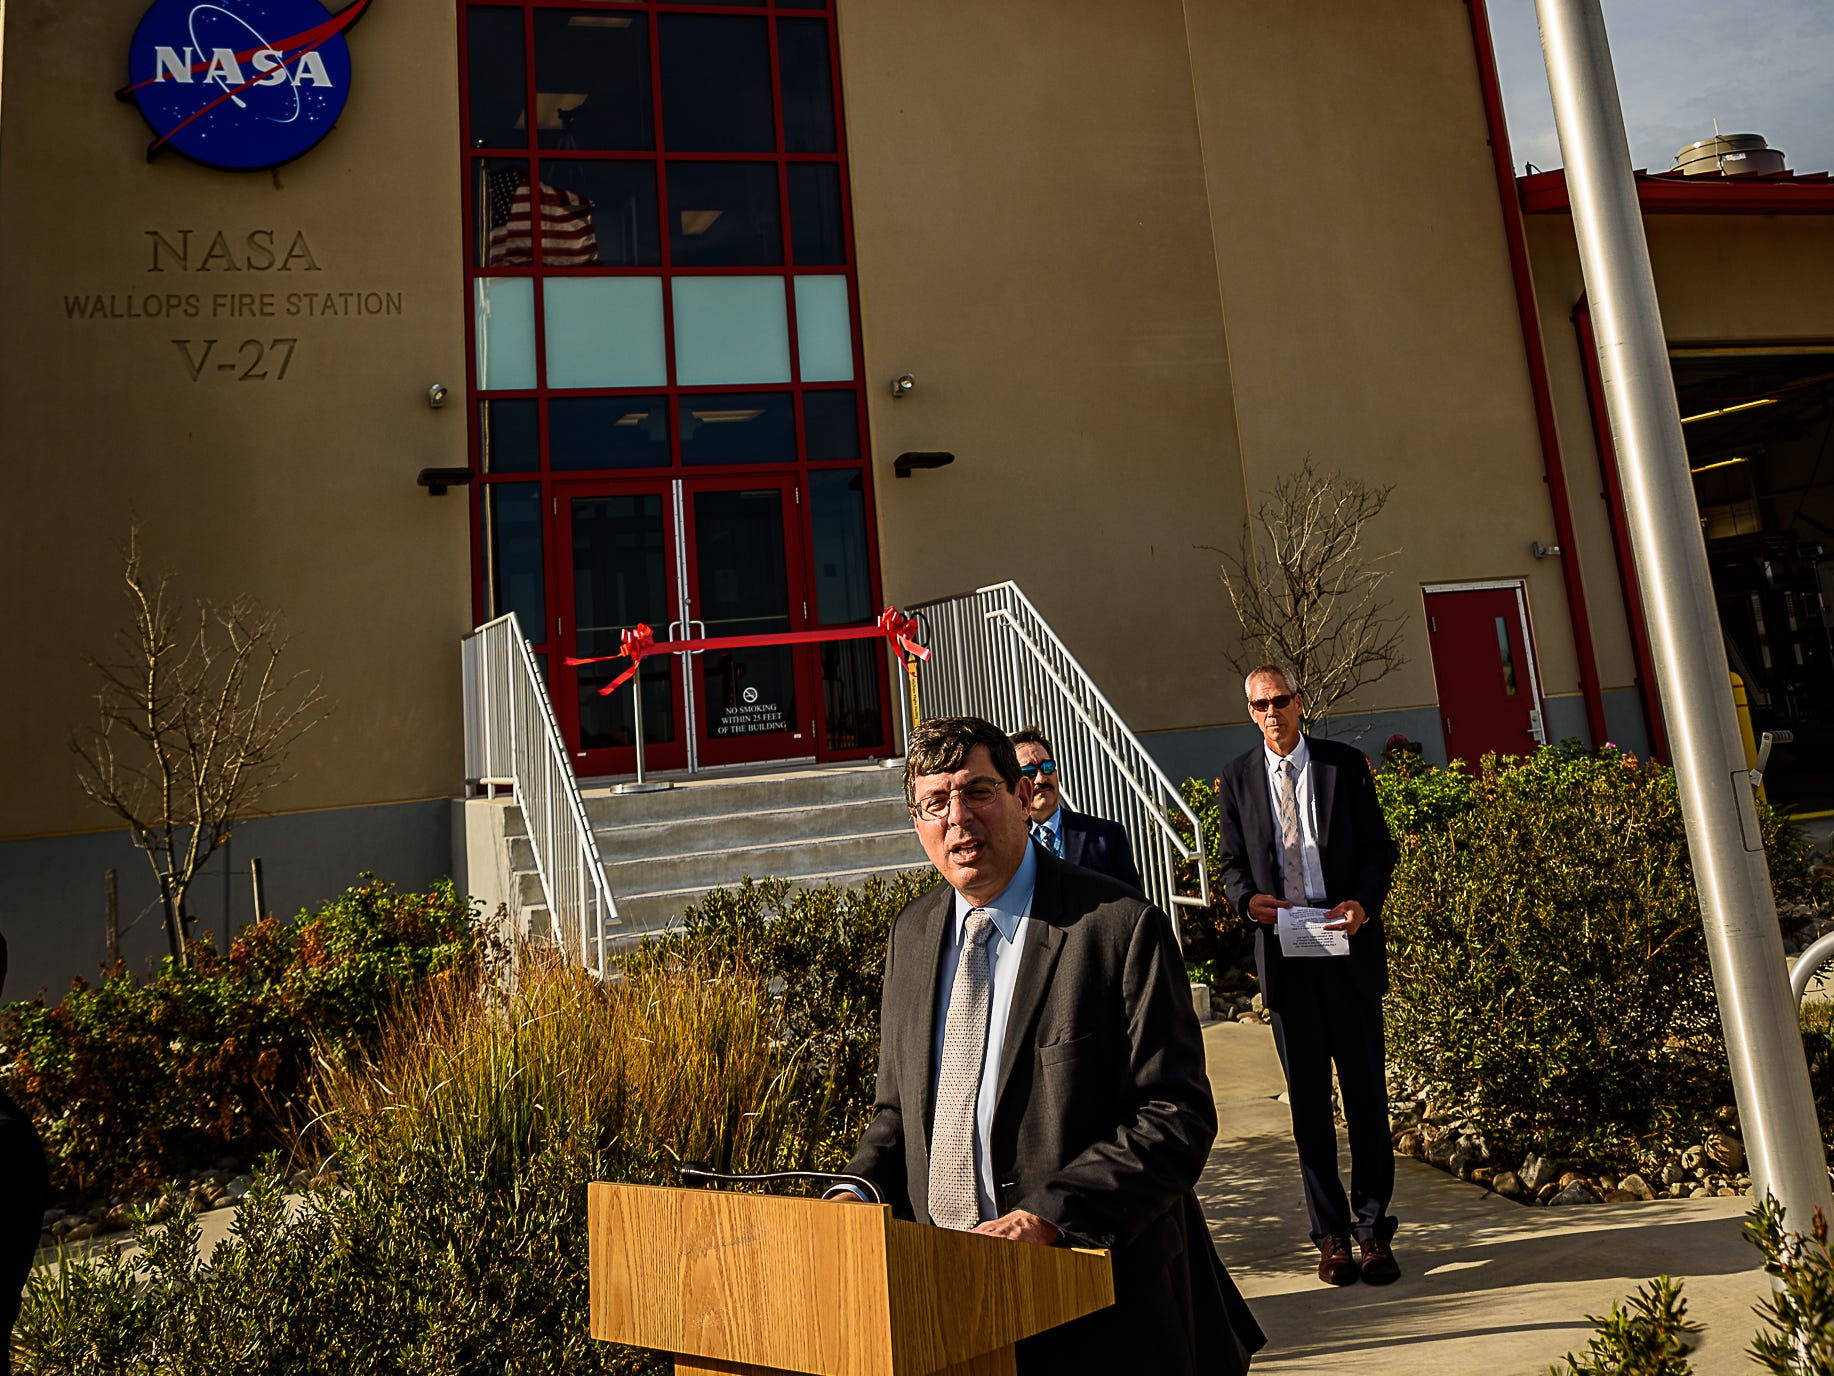 Goddard Center Director Chris Scolese speaks at the opening of the new facilities at Wallops Island as Bill Wrobel, director of Wallops Flight Facility, looks on.